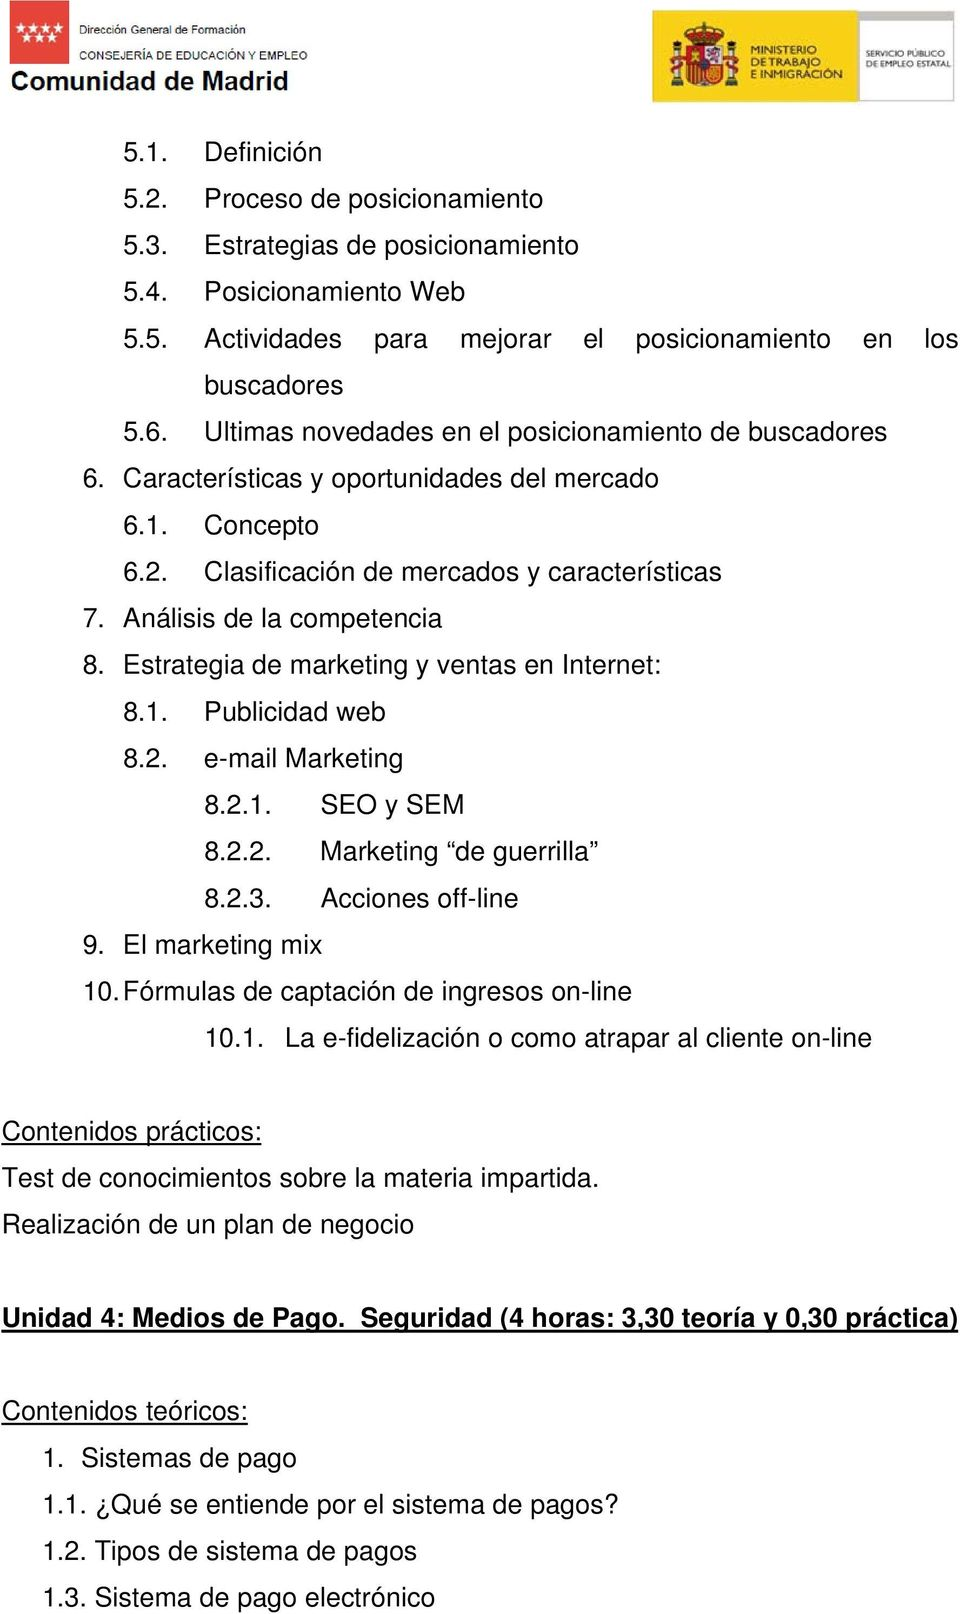 Estrategia de marketing y ventas en Internet: 8.1. Publicidad web 8.2. e-mail Marketing 8.2.1. SEO y SEM 8.2.2. Marketing de guerrilla 8.2.3. Acciones off-line 9. El marketing mix 10.